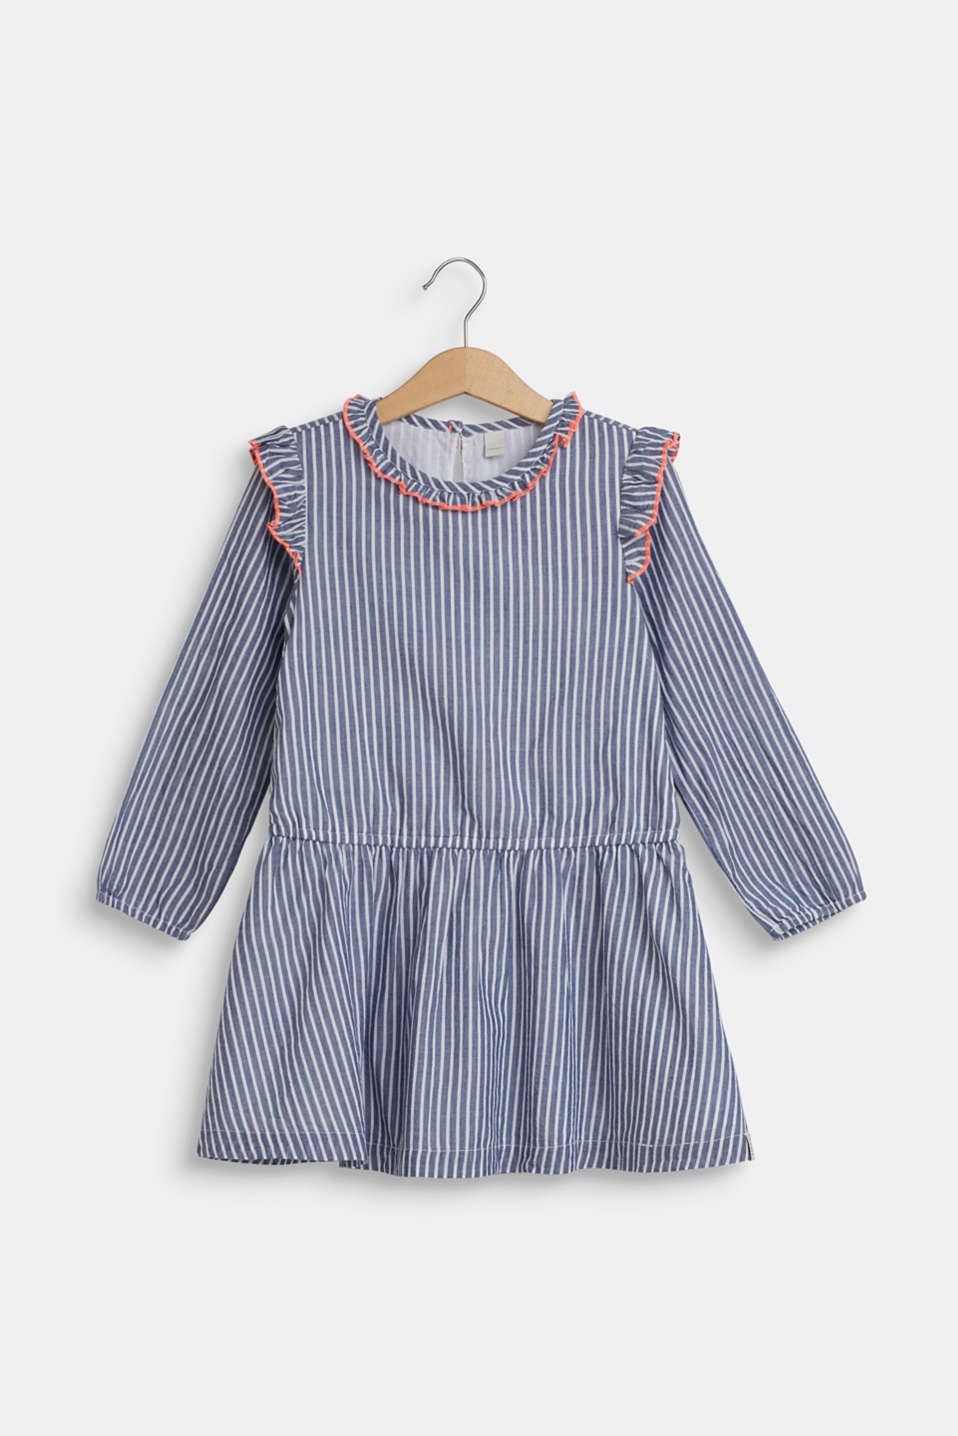 Esprit - Dress with frills, 100% cotton